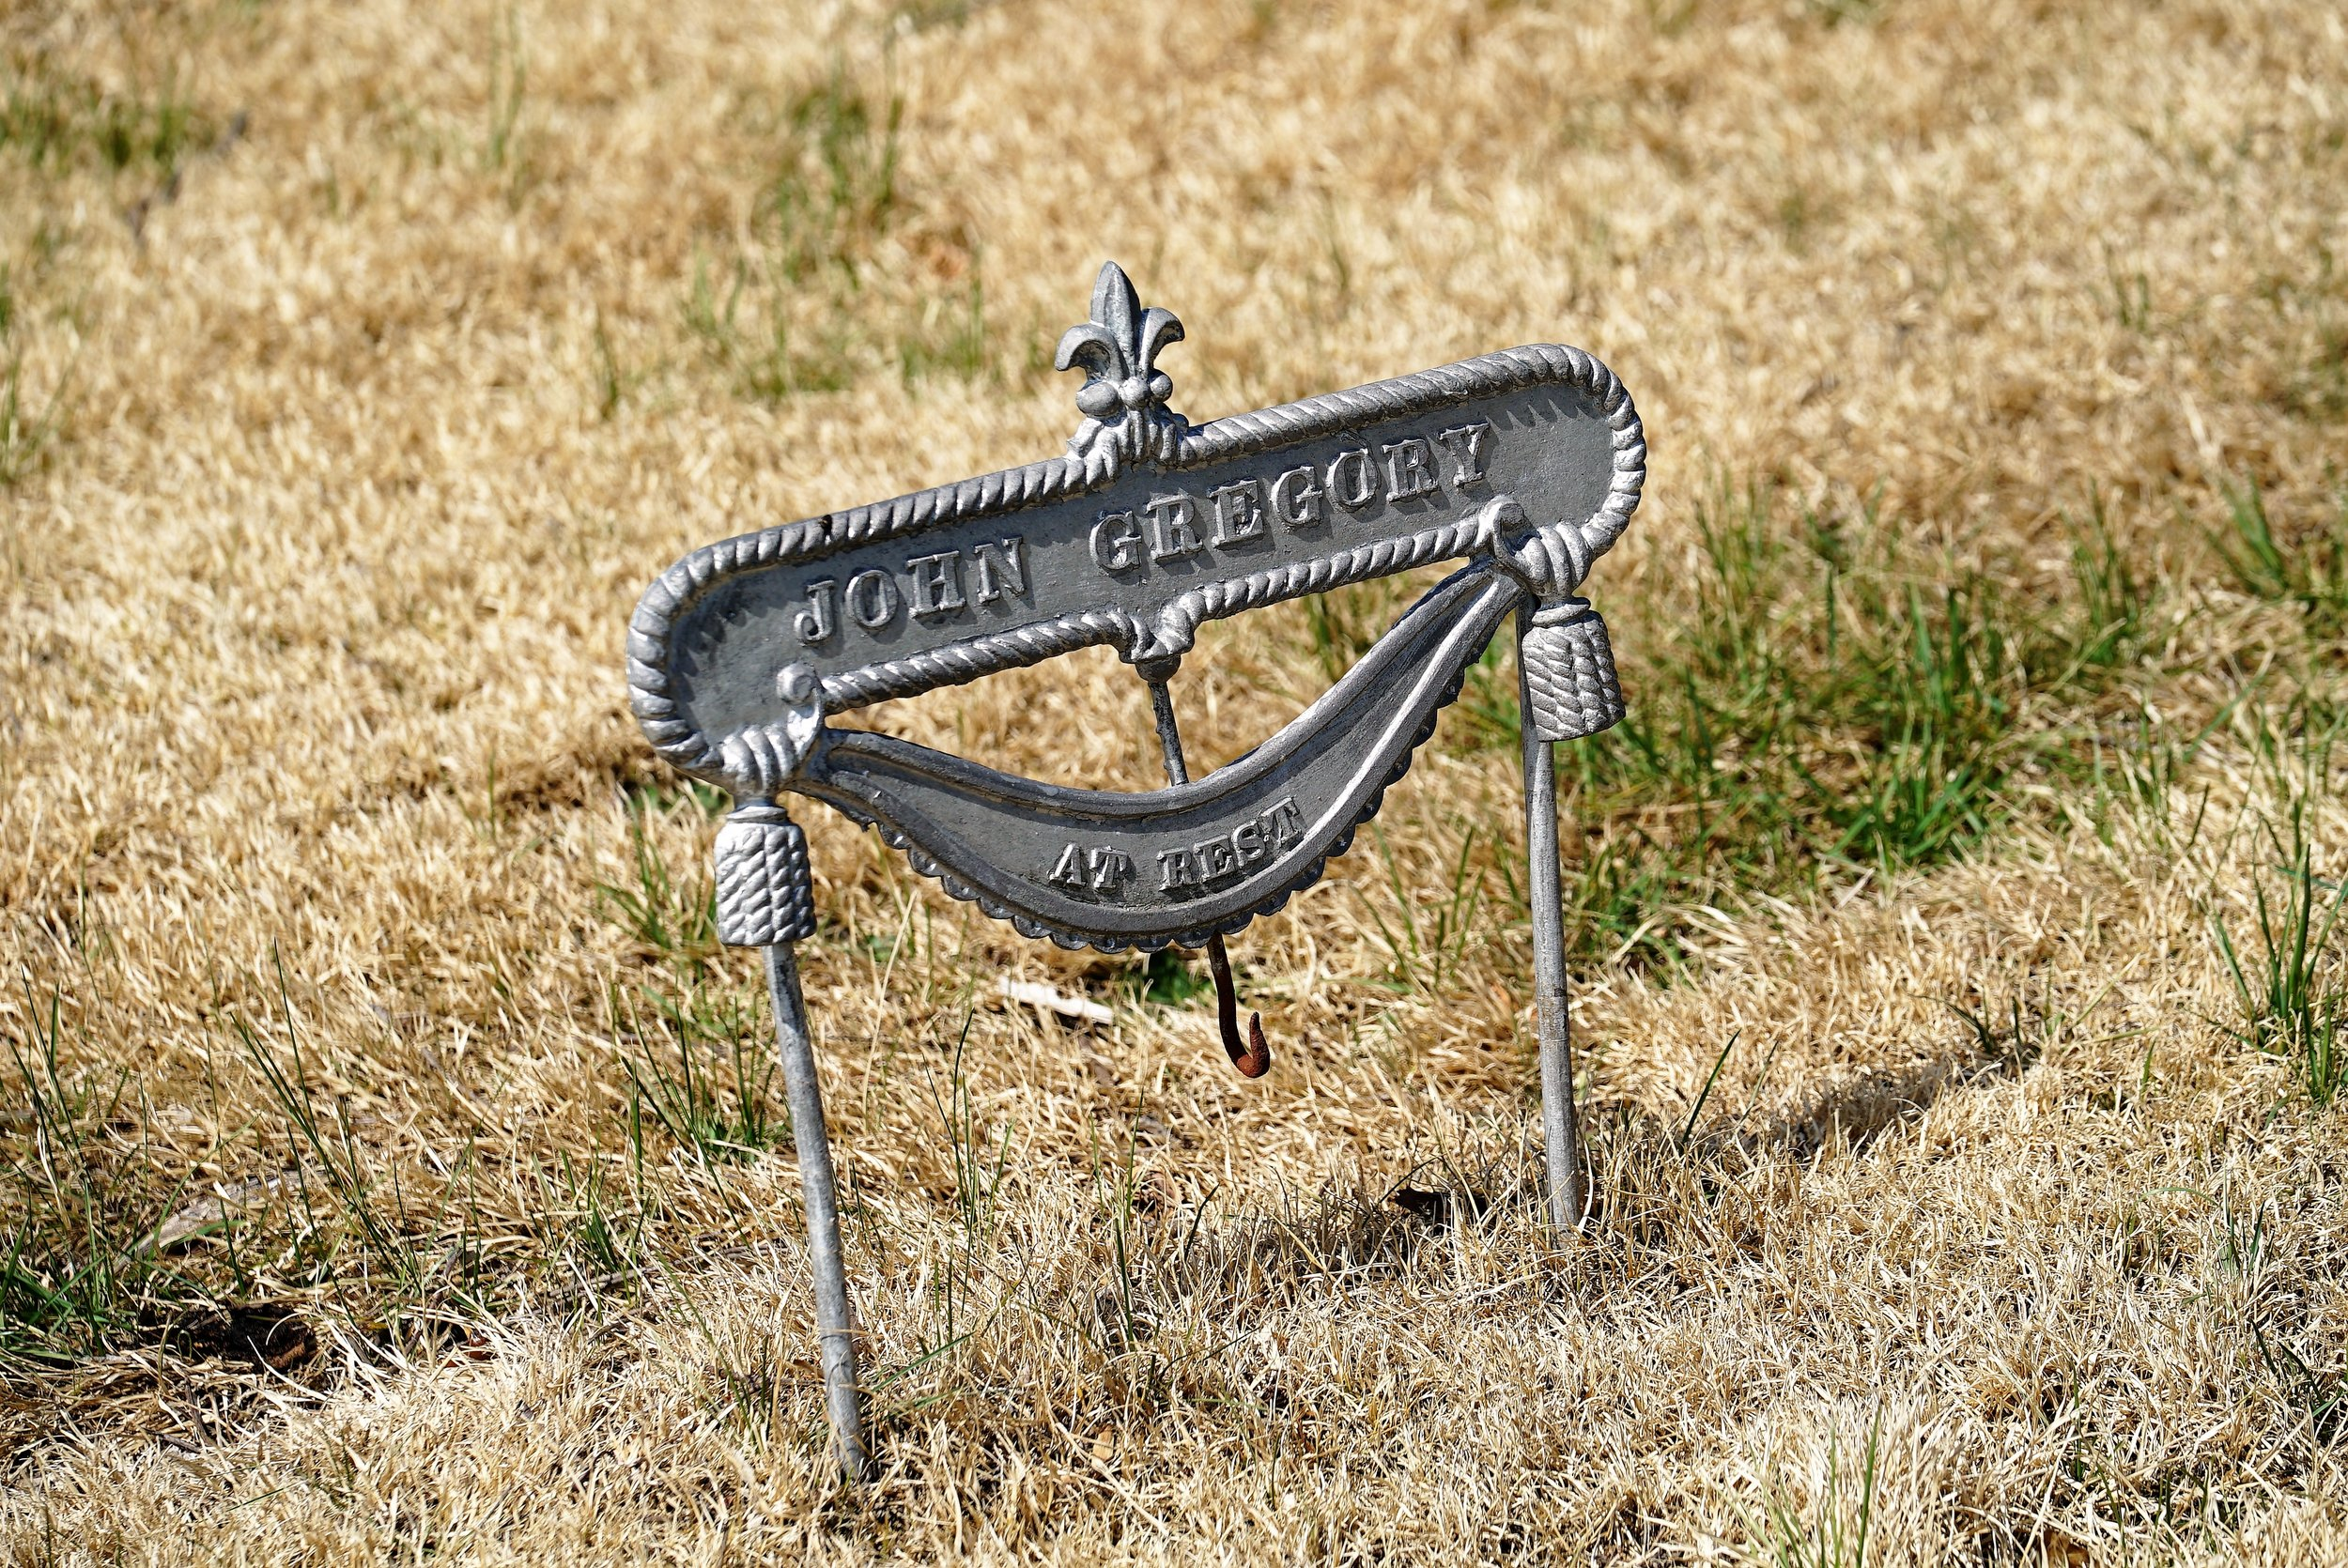 An unusual grave marker found at Old Union United Methodist Church Cemetery. Rose Valley, Pennsylvania.